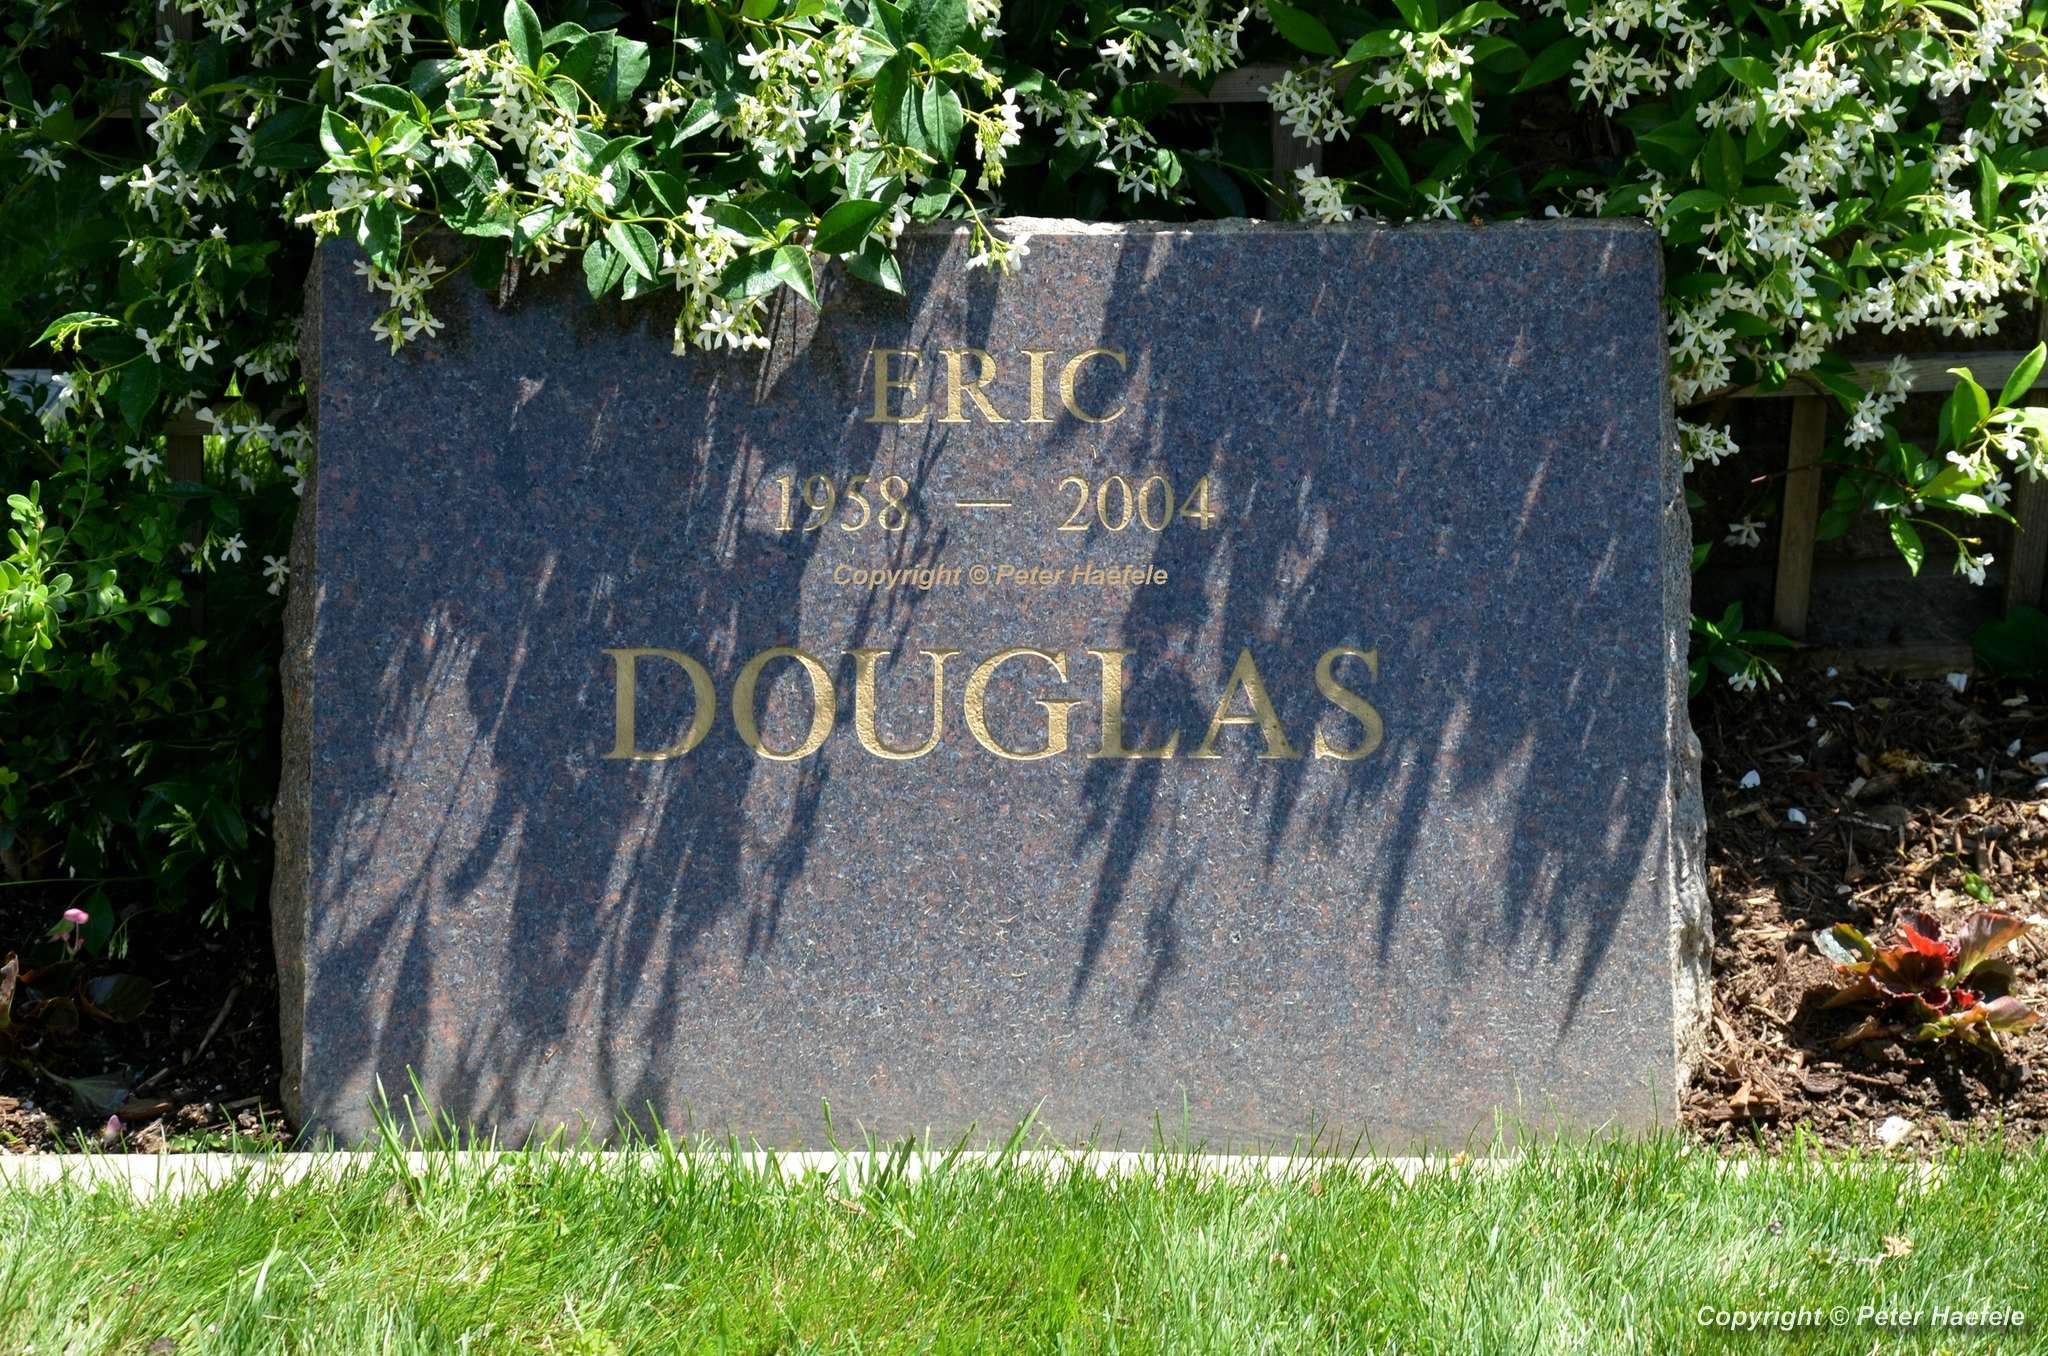 Roadtrip USA - Westwood Village Memorial Park Cemetery - Grave of Eric Douglas